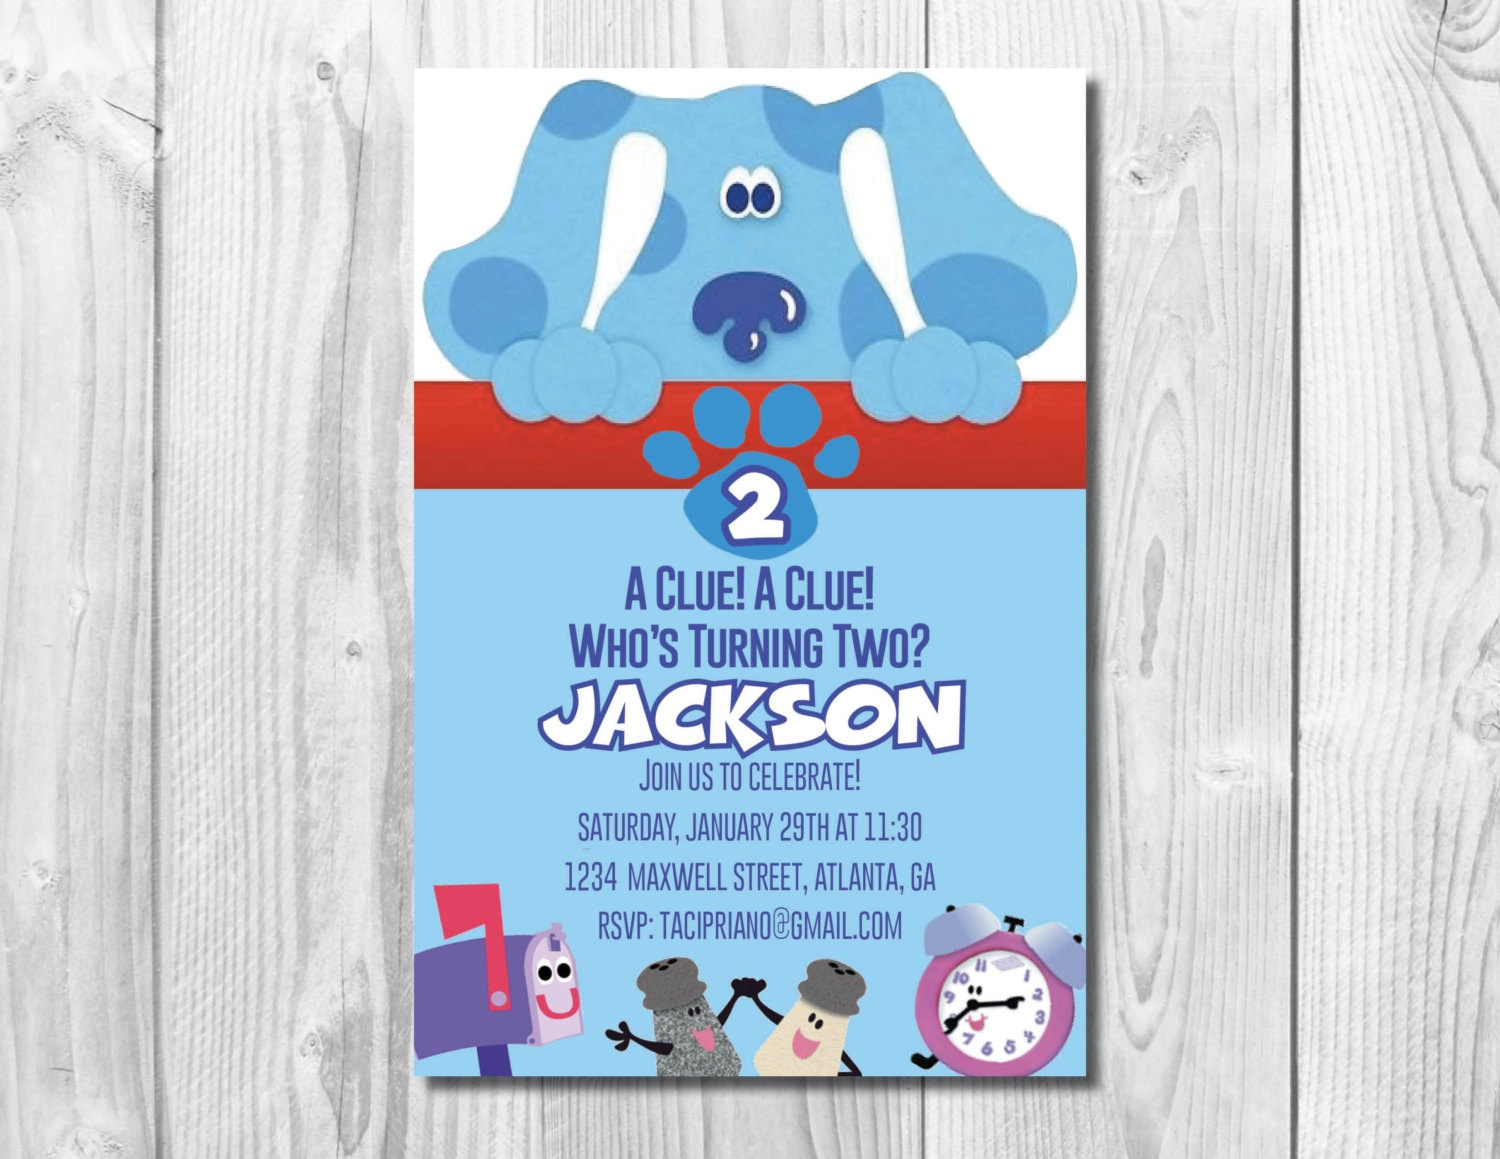 Blues Clues Birthday Party Invitation Blues Clues | Etsy - Blue's Clues Invitations Free Printable